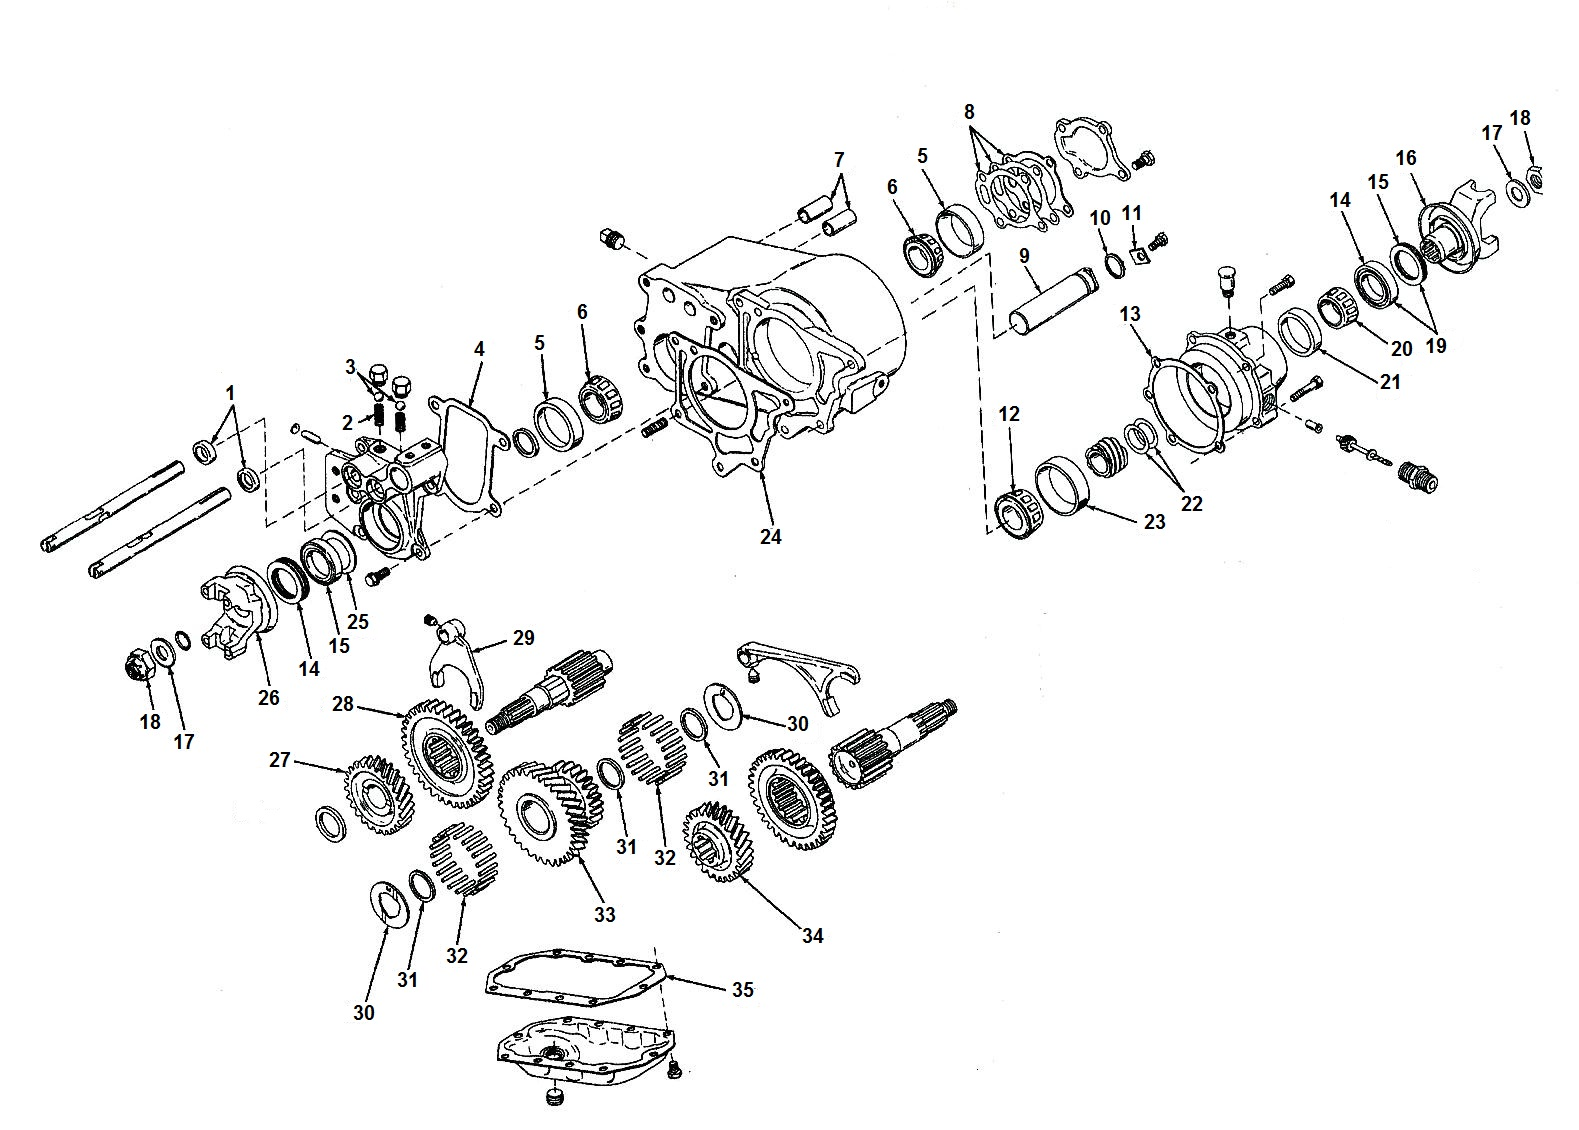 hight resolution of transfer case dana spicer 20 exploded view diagram